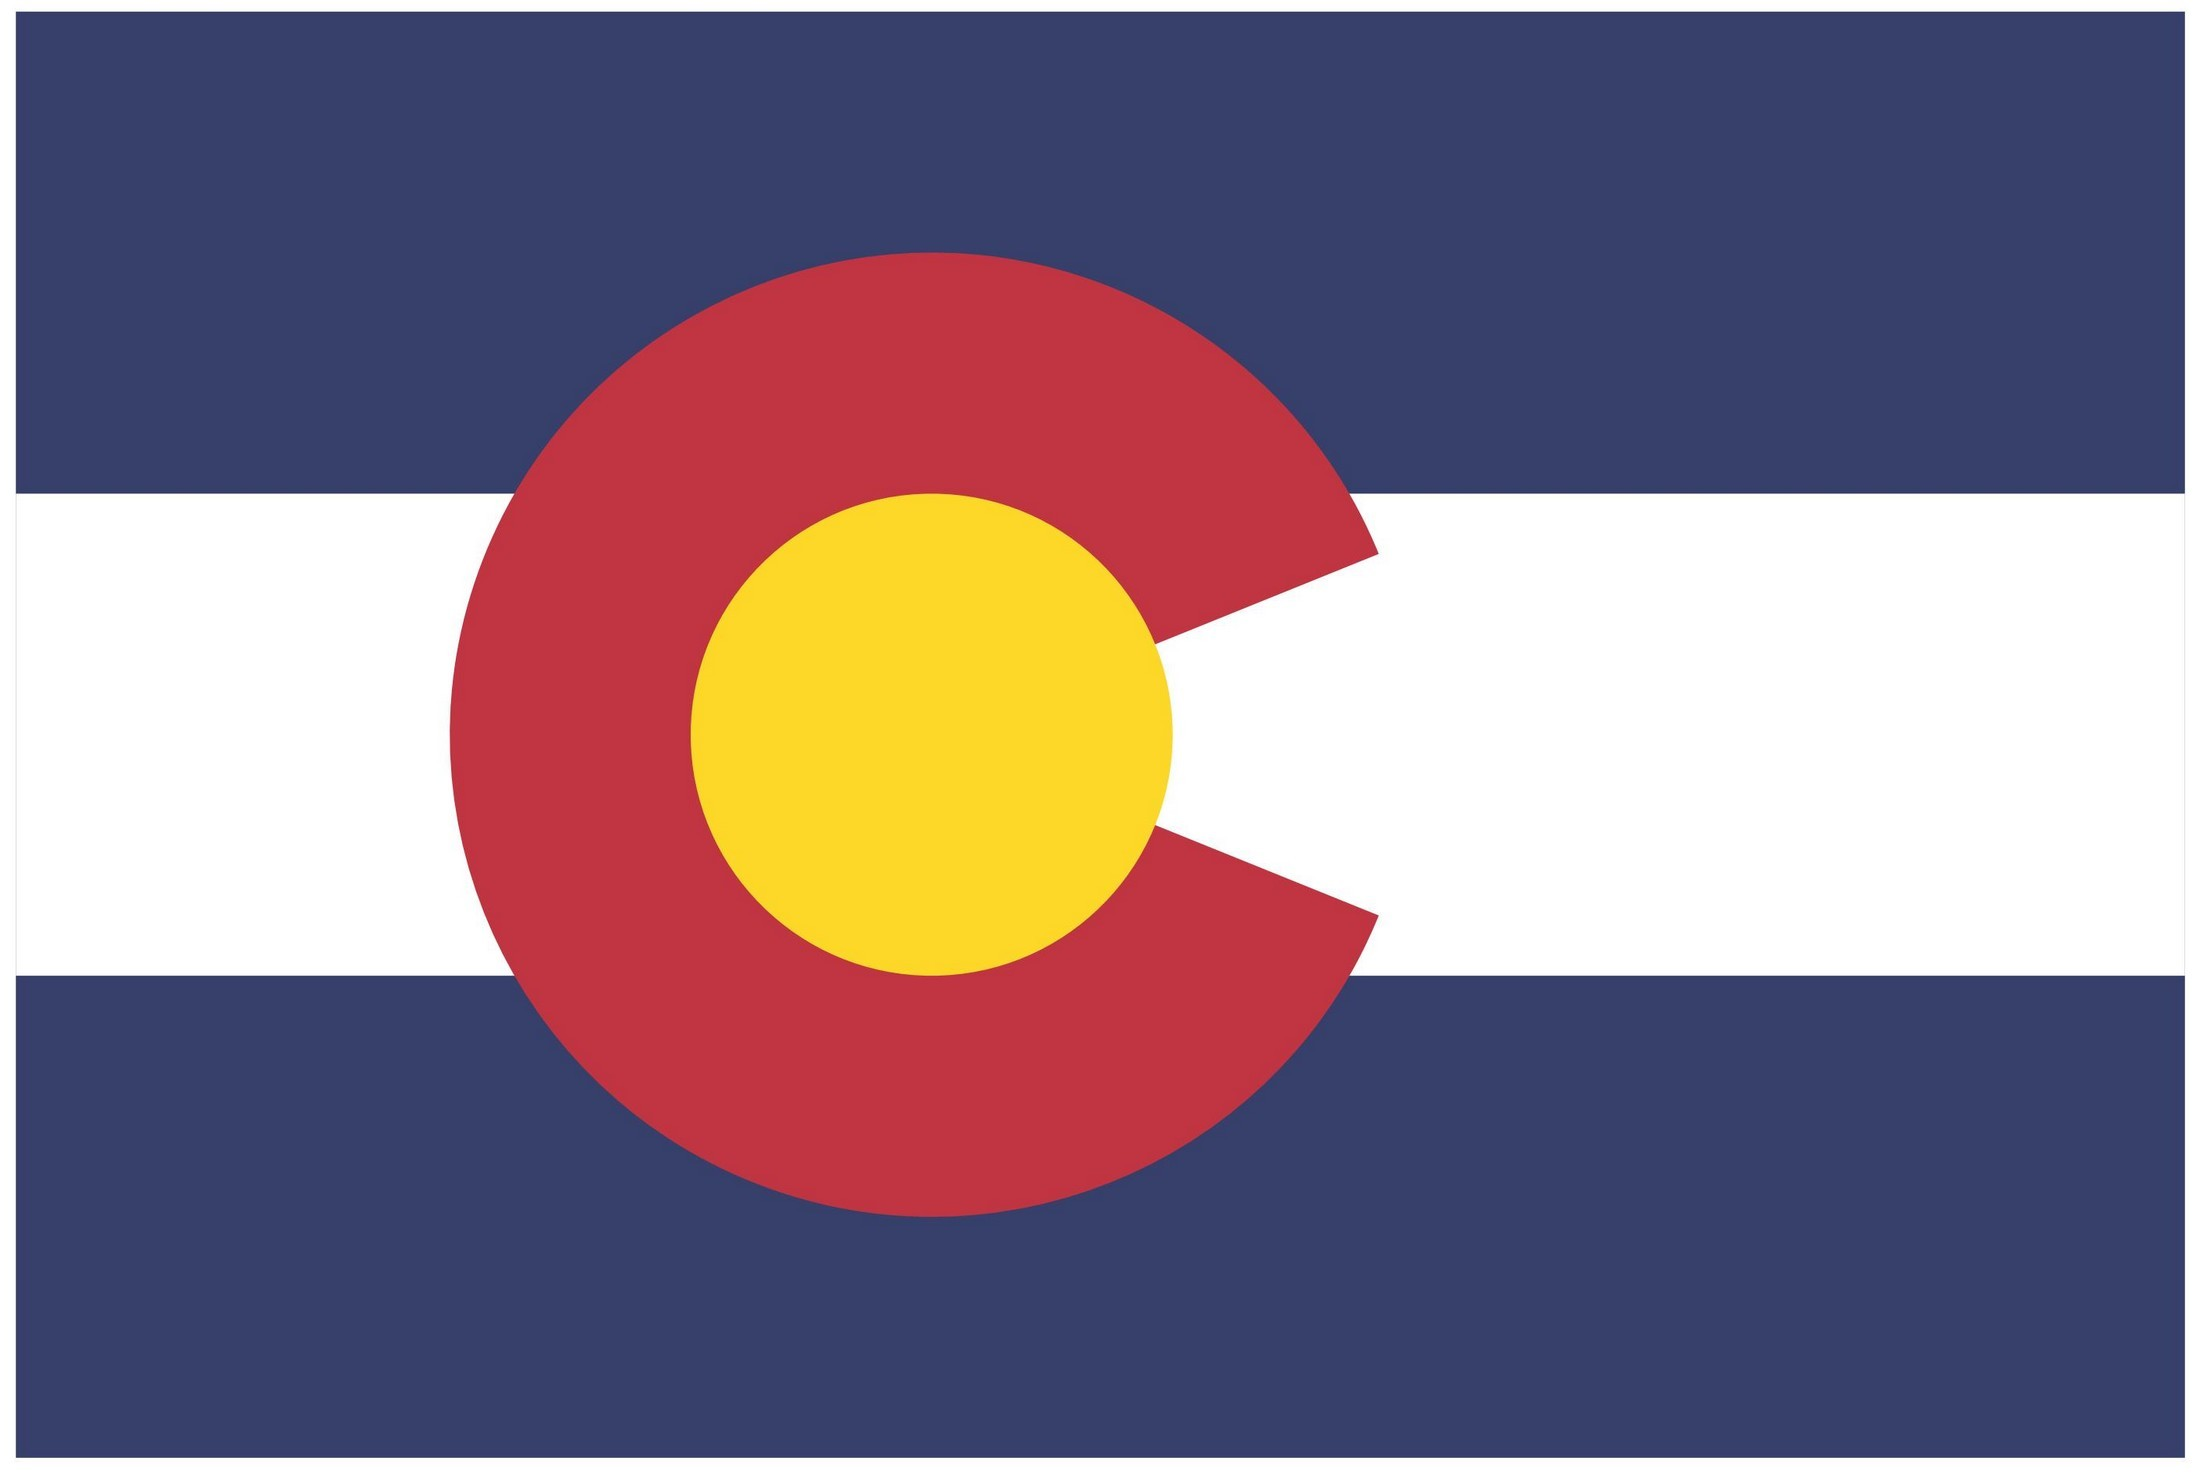 Colorado State Flag&Seal [EPS Files] Vector EPS Free Download, Logo, Icons, Brand Emblems